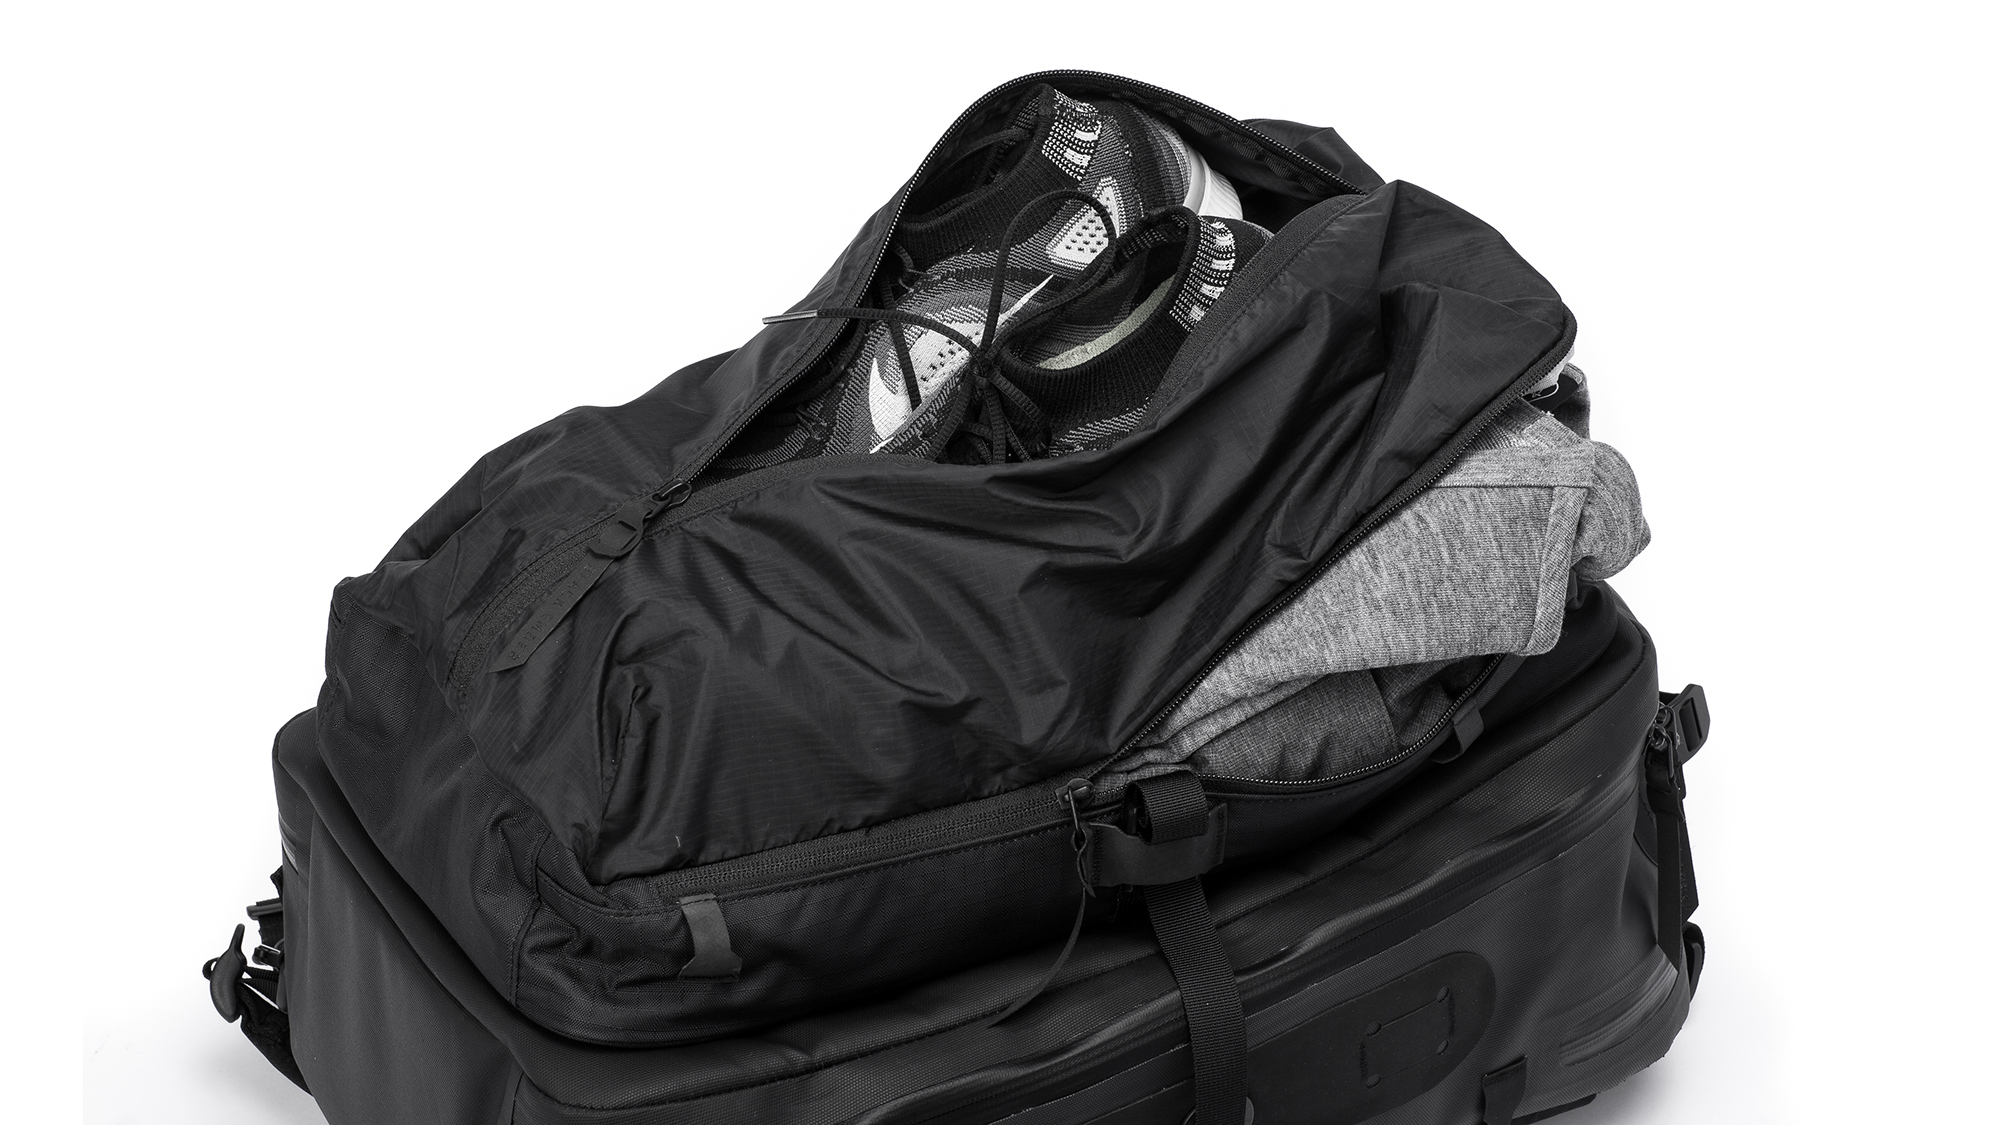 91e11c98e649 The Black Ember Citadel modular backpack aims to be all bags to all  travelers